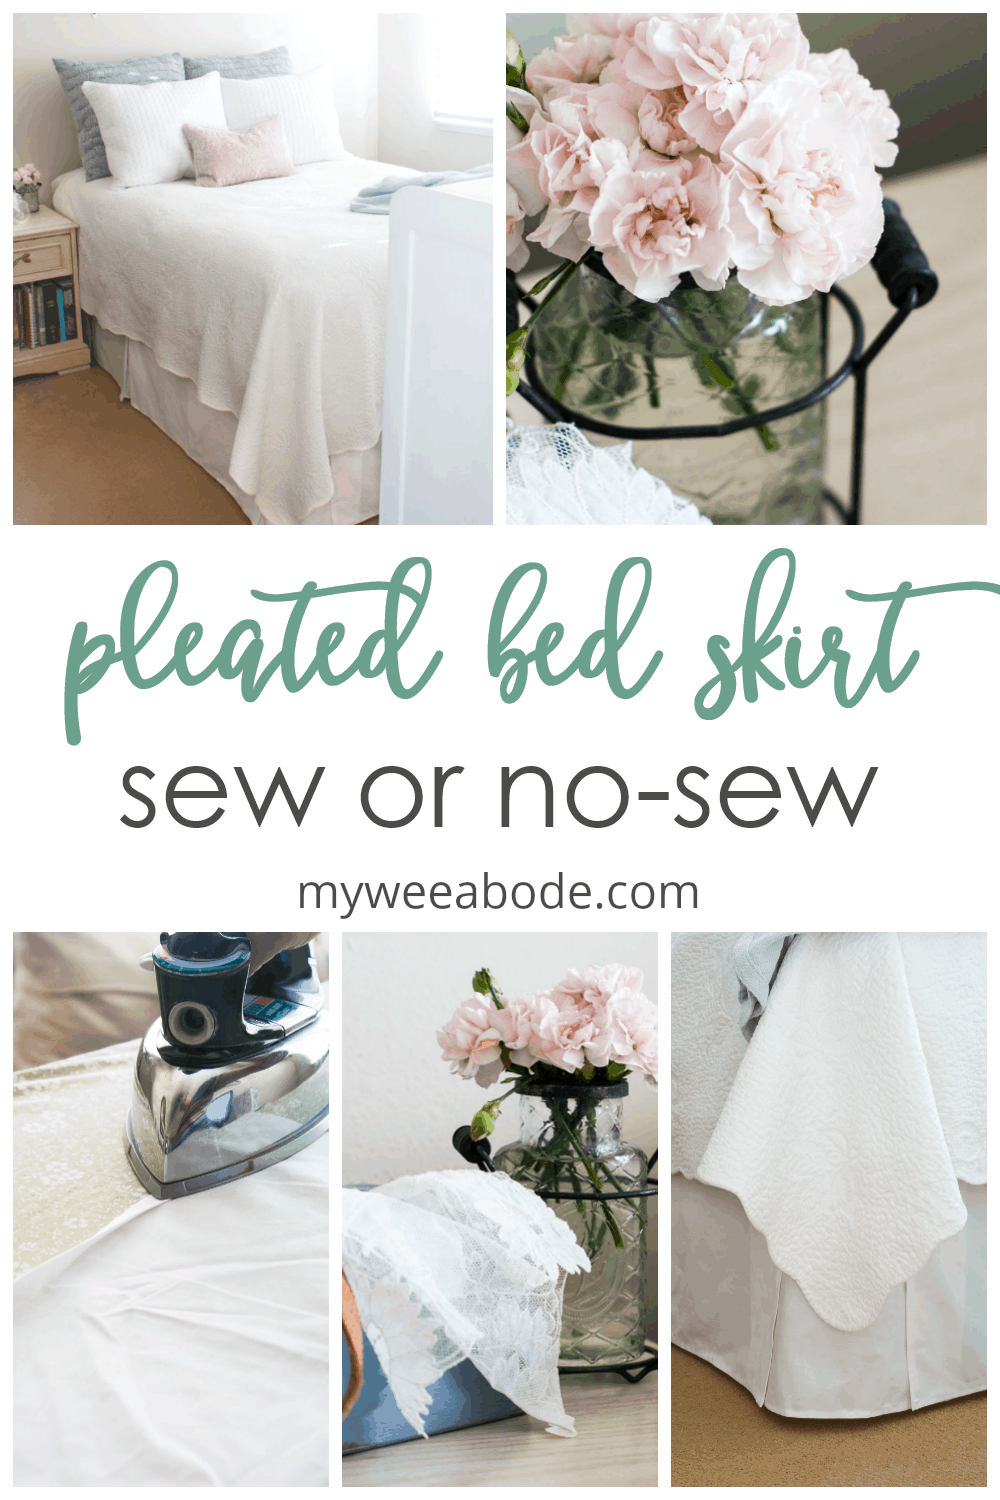 easy sew or no sew bed skirt with photos of flowers iron and bed